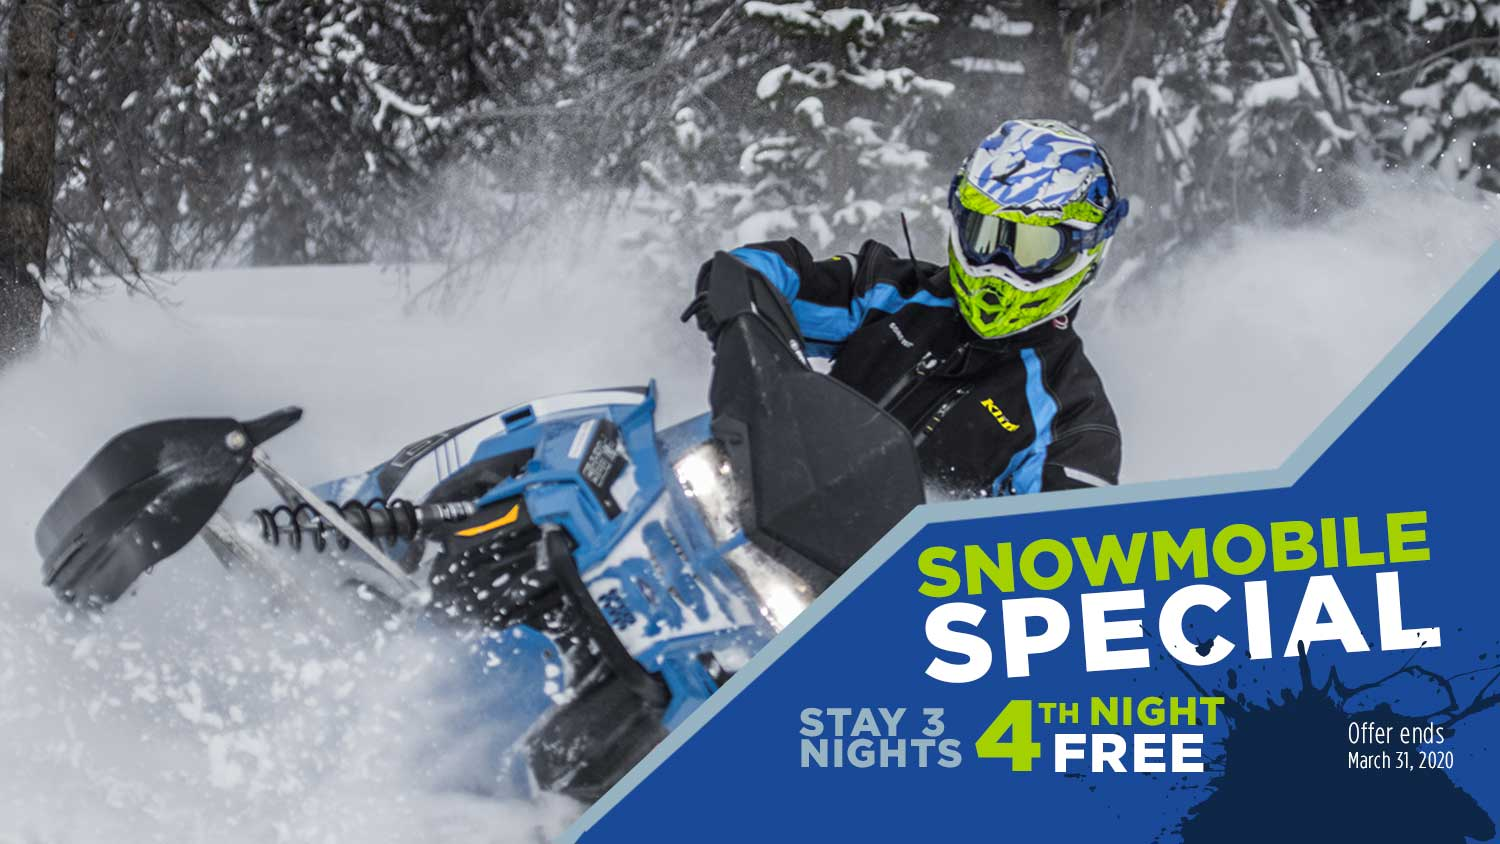 Snowmobile Special 2019-20